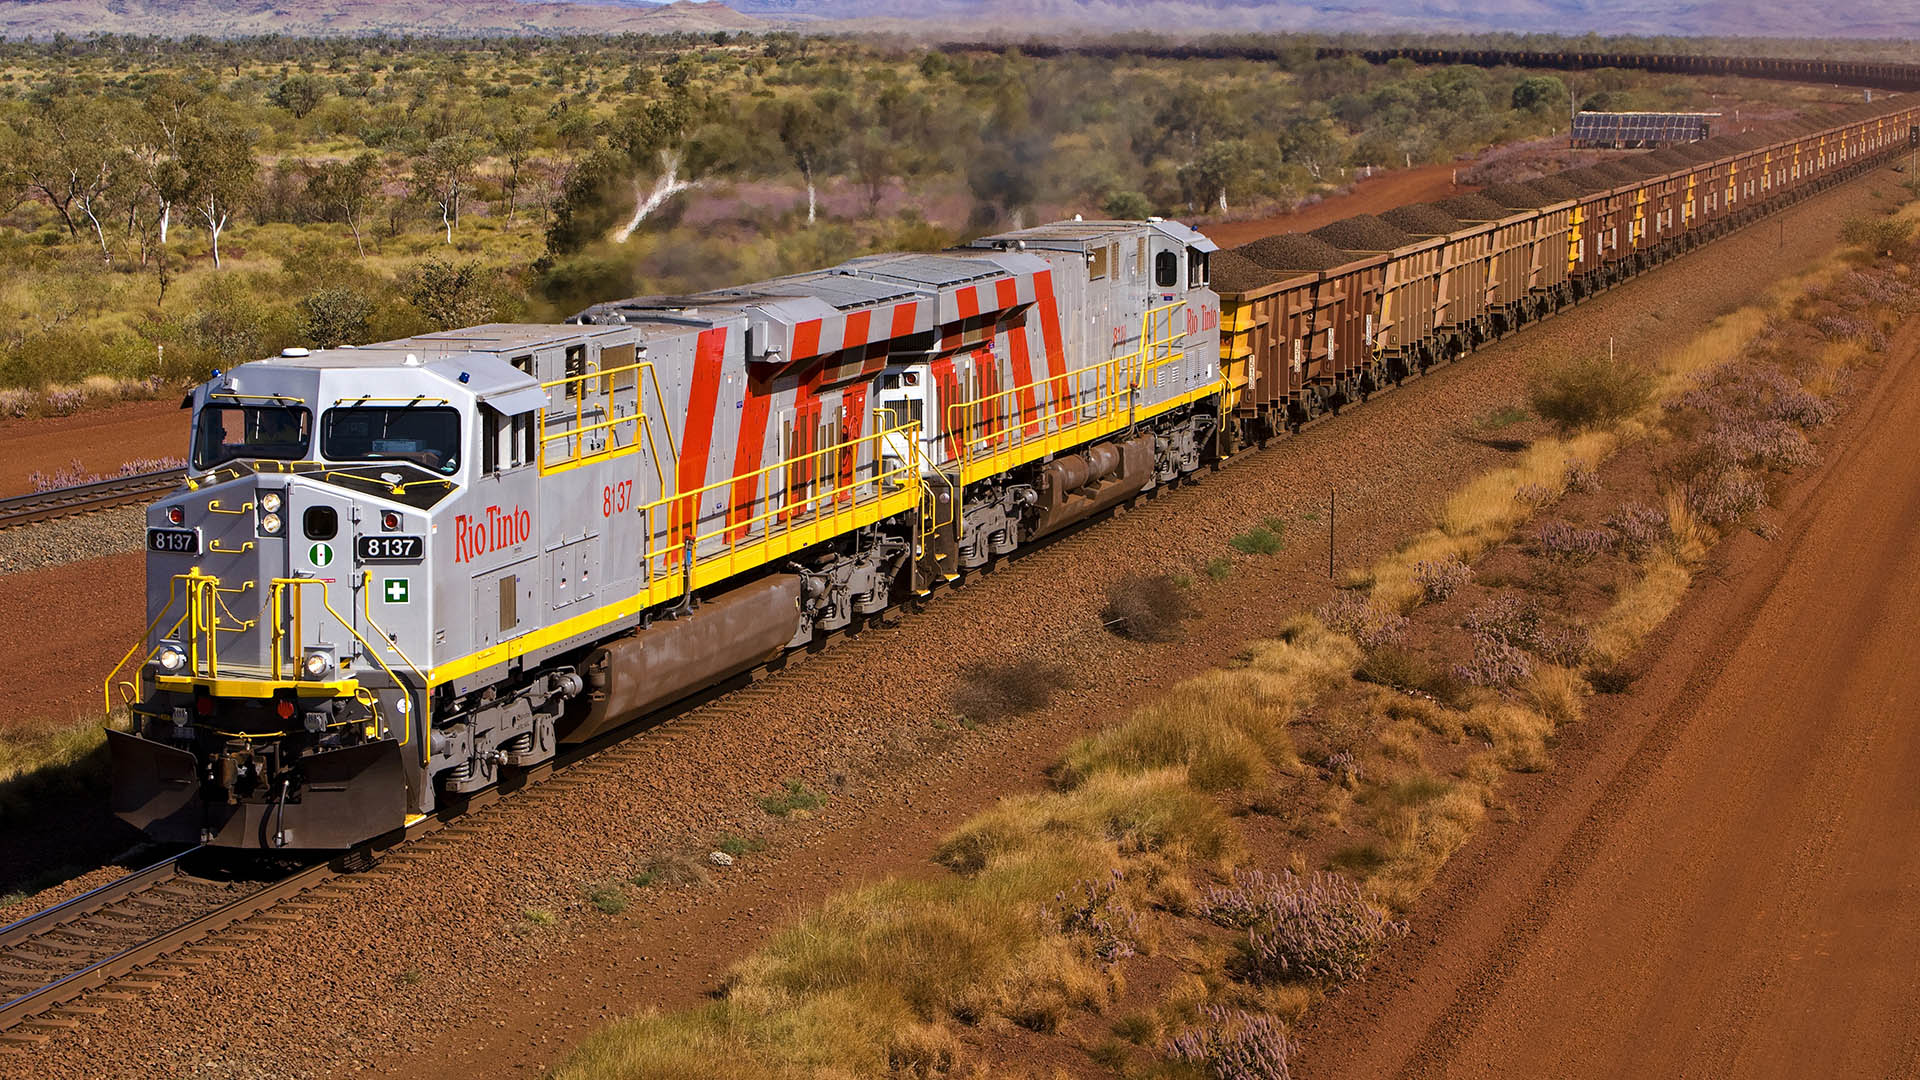 RioTinto AutoHaul train